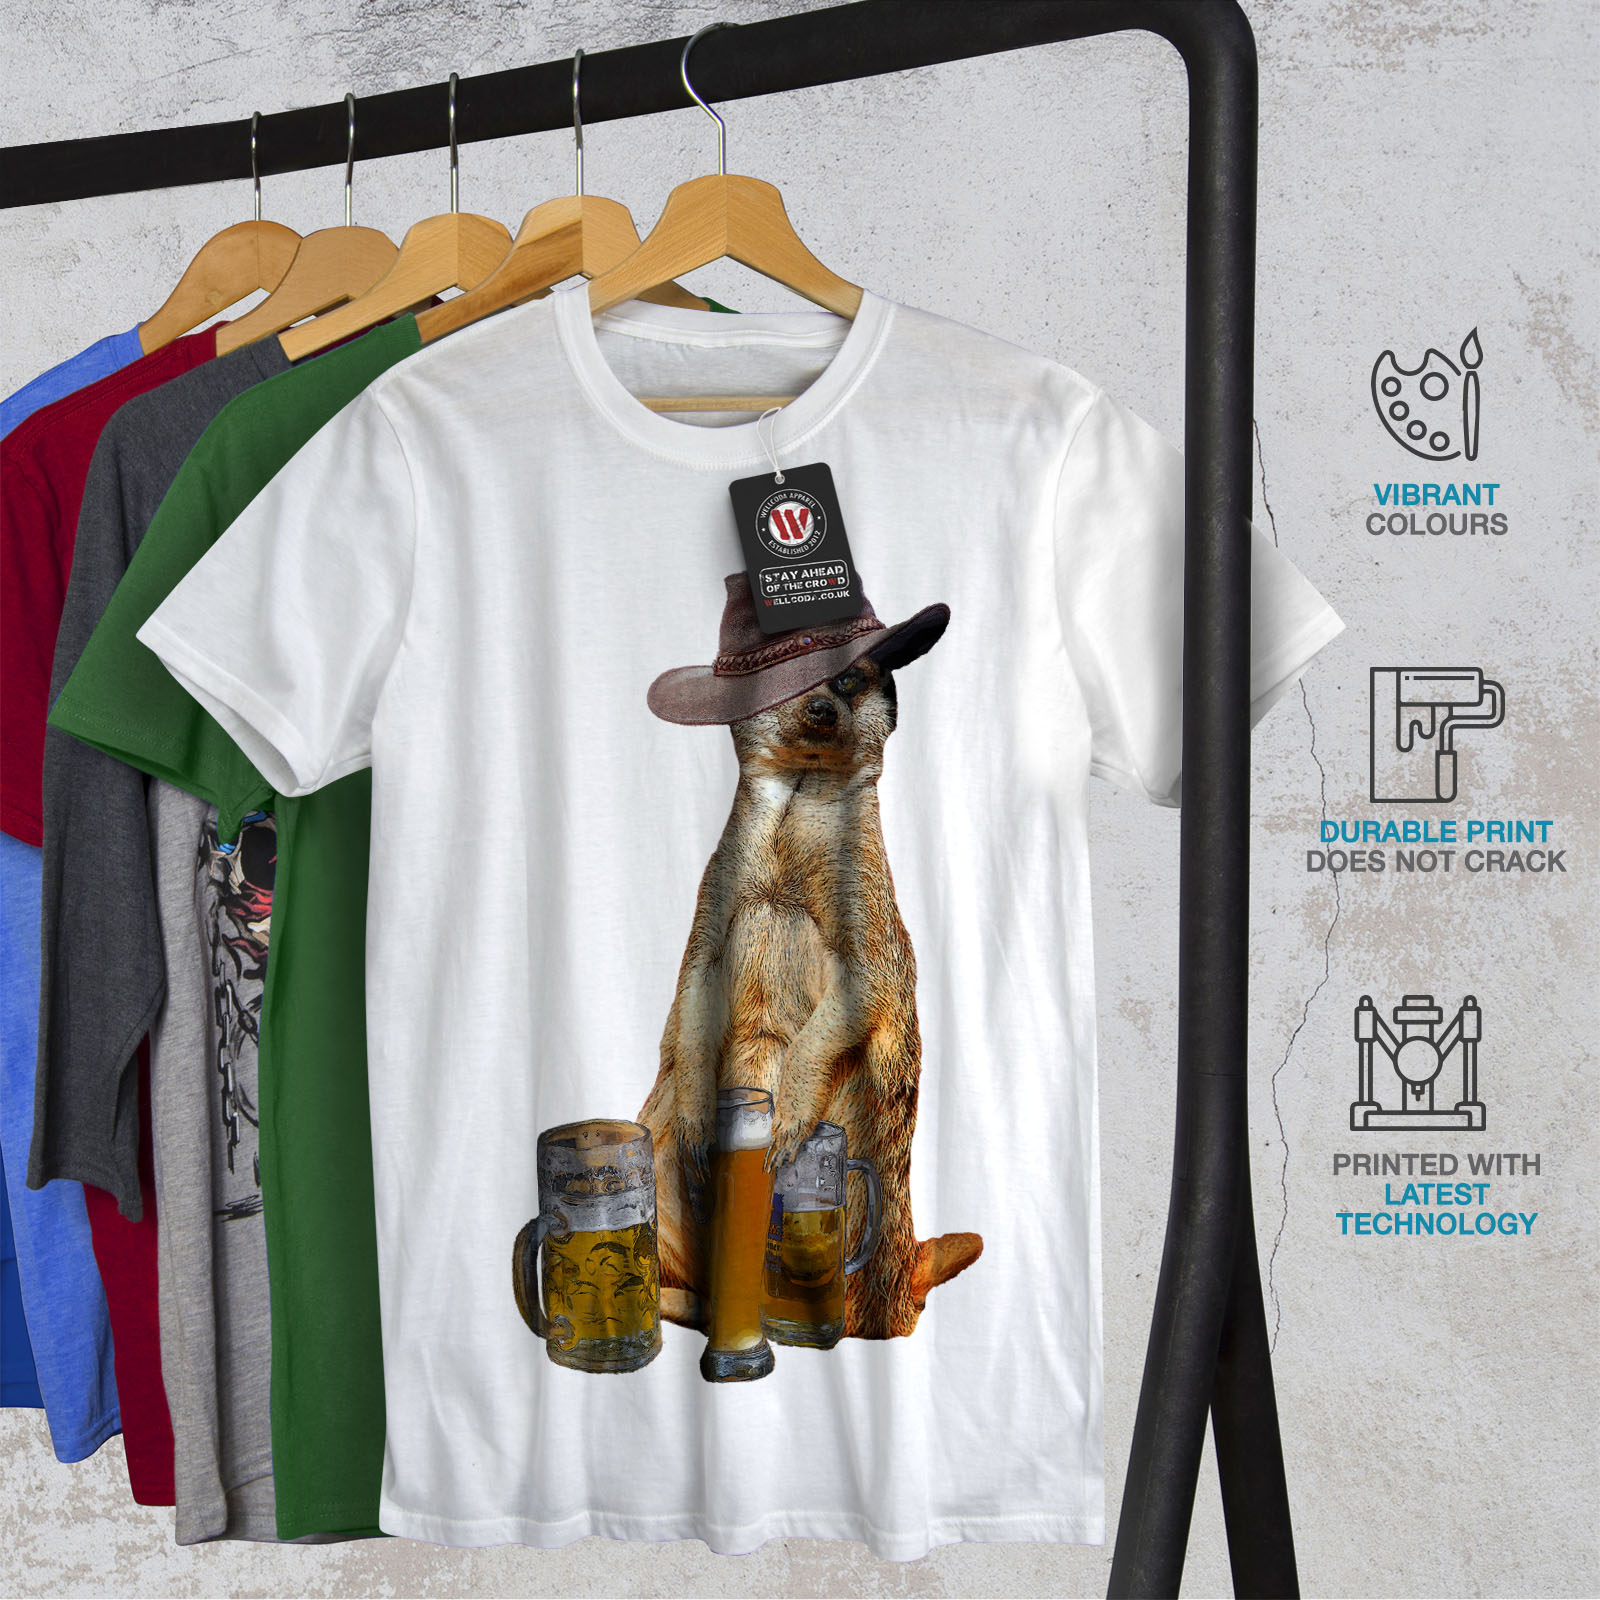 Wellcoda-Drunk-Animal-Beer-Mens-T-shirt-Funny-Graphic-Design-Printed-Tee thumbnail 12